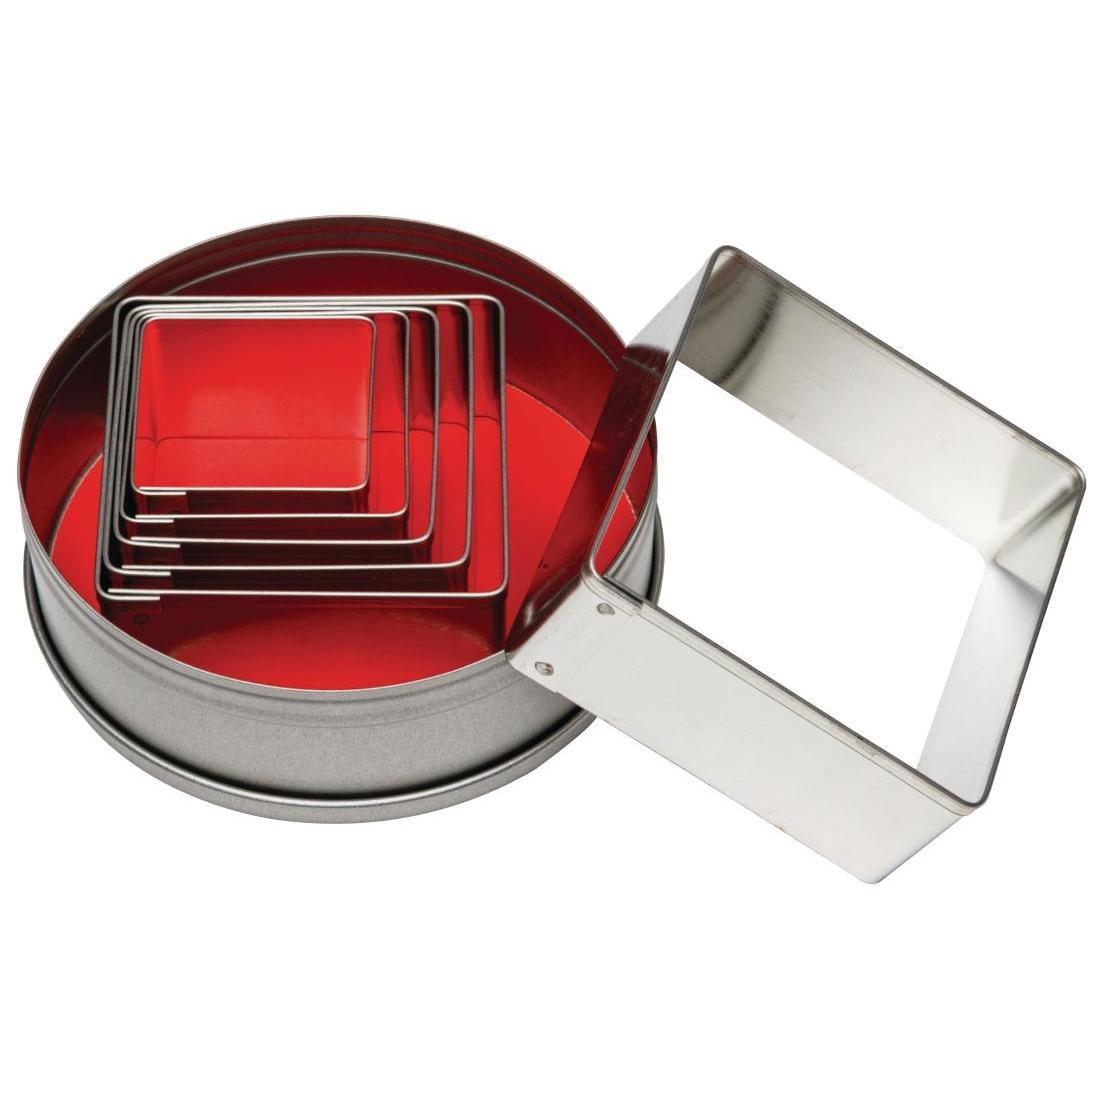 Vogue Square Plain Pastry Cutter Set - Case 6 - E017